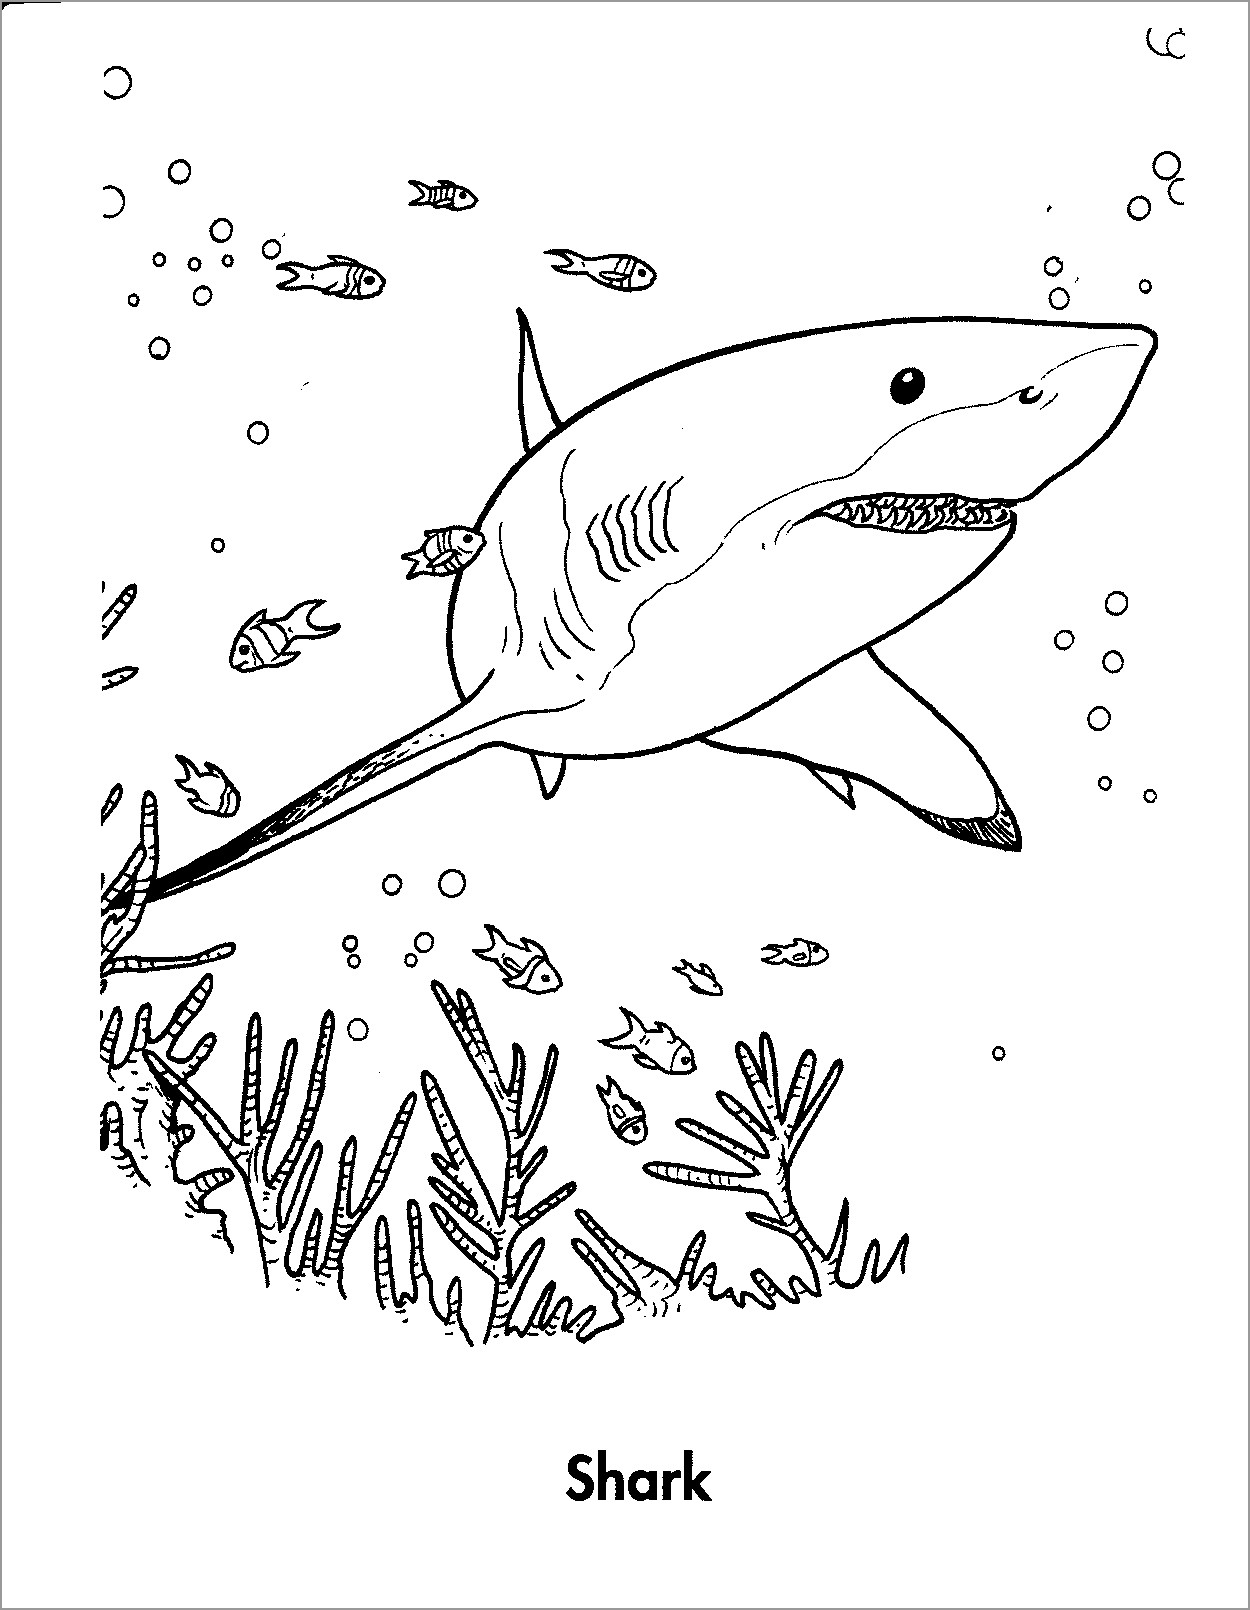 Shark Coloring Pages - ColoringBay